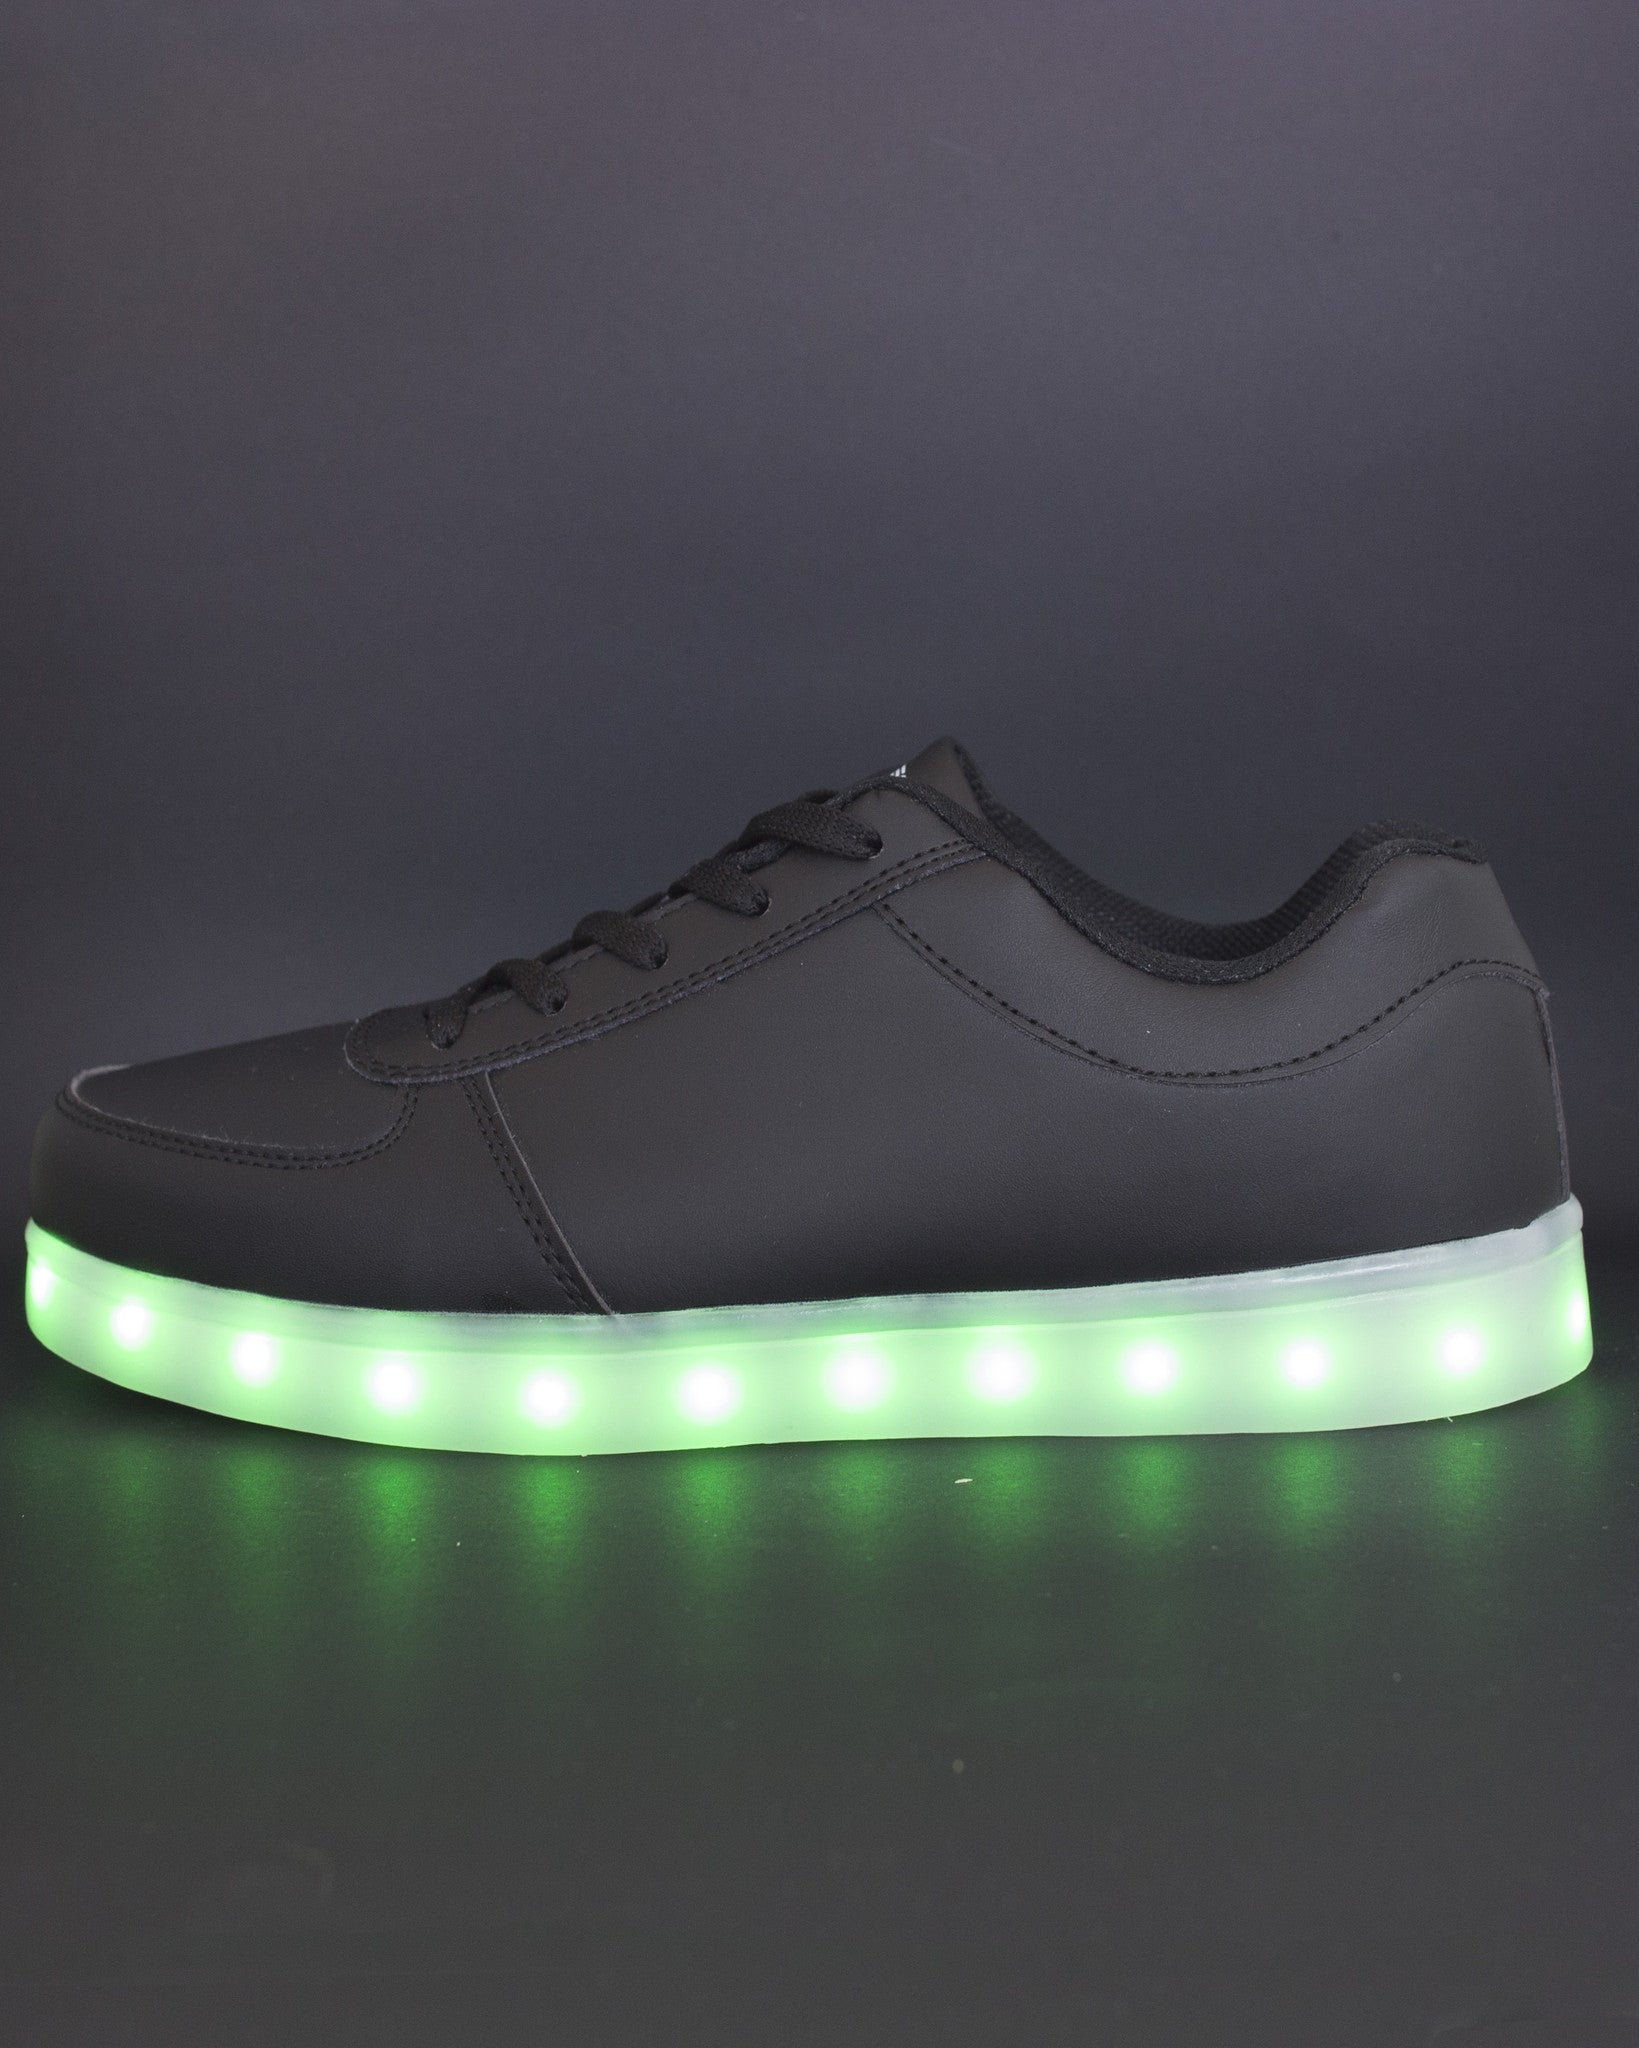 Light Up Shoes - All Black - Electric Styles | World's Number 1 Light Up Shoe Store - {product_type}} -  - 8